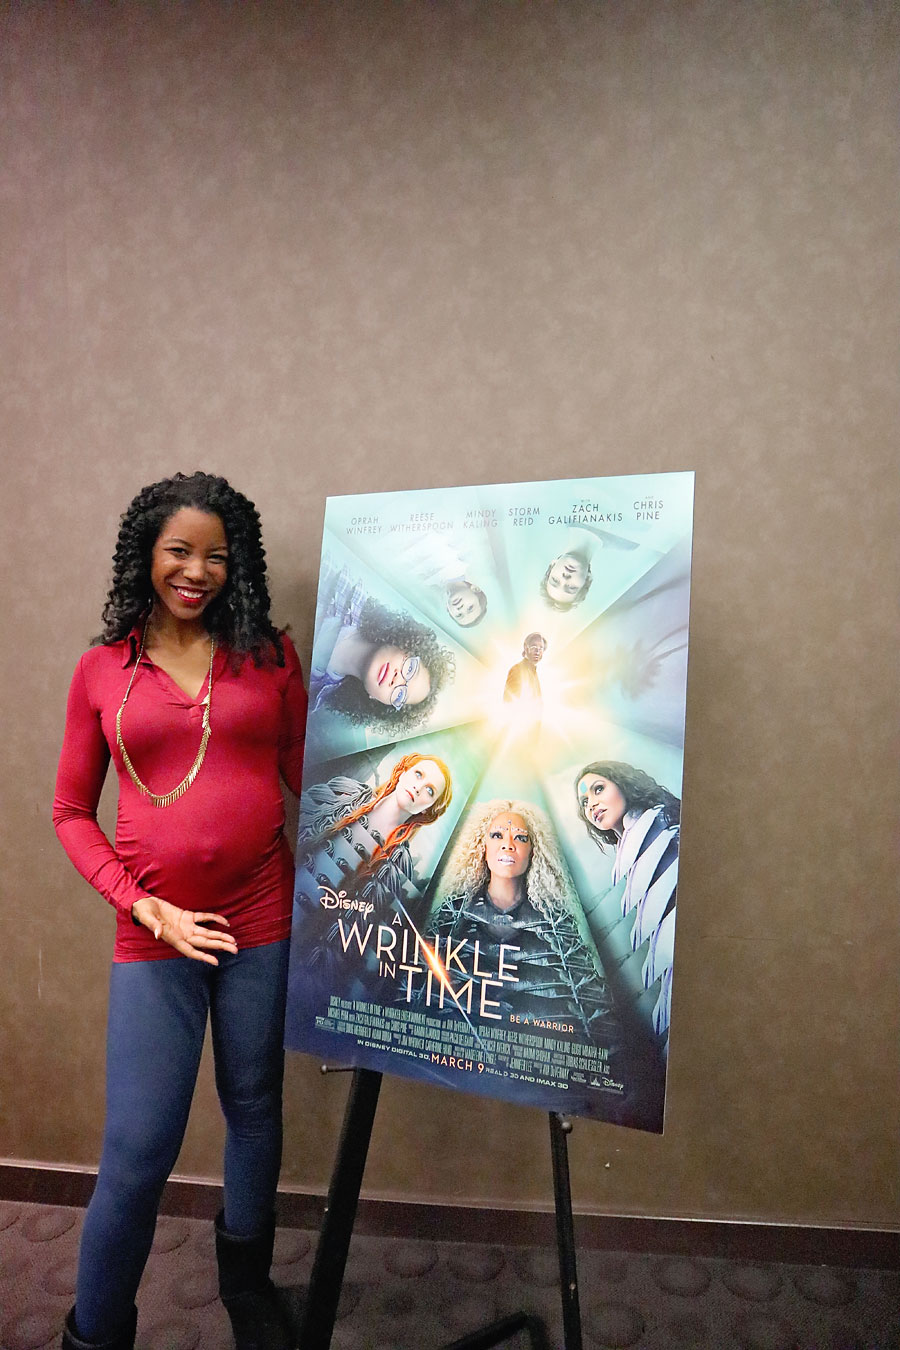 Getting ready to interview Oprah Winfrey at Wrinkle in Time Event